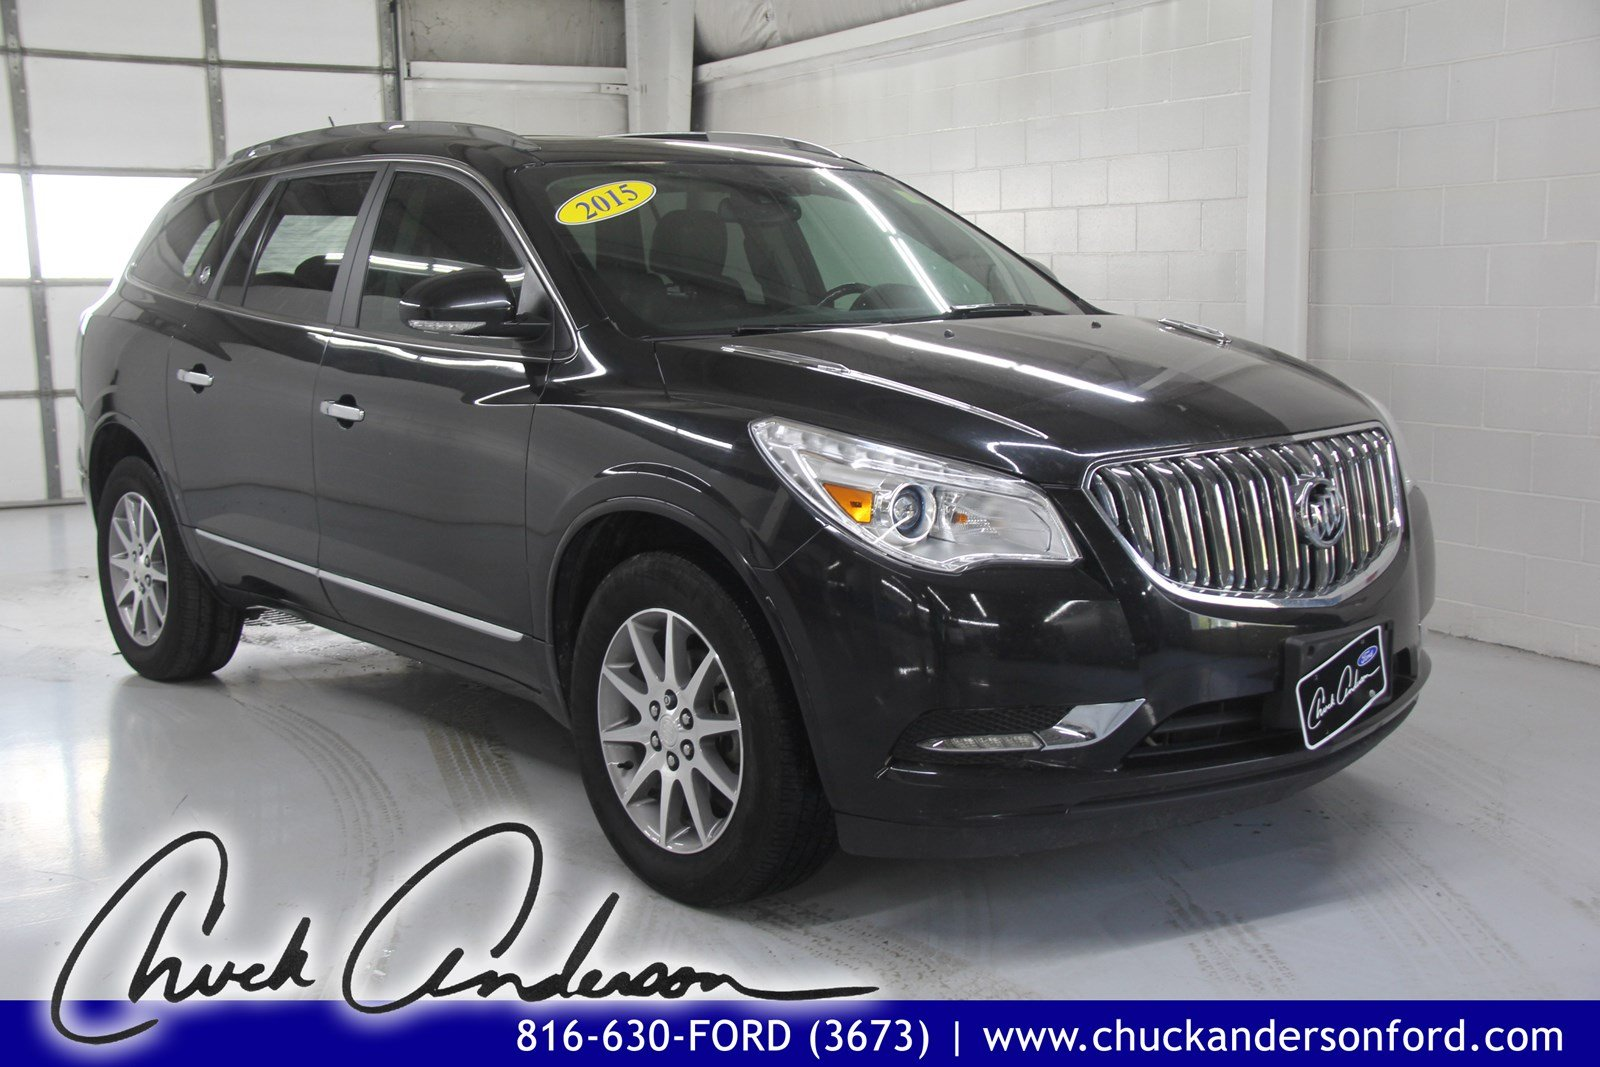 2015 Buick Enclave Leather FWD  Leather